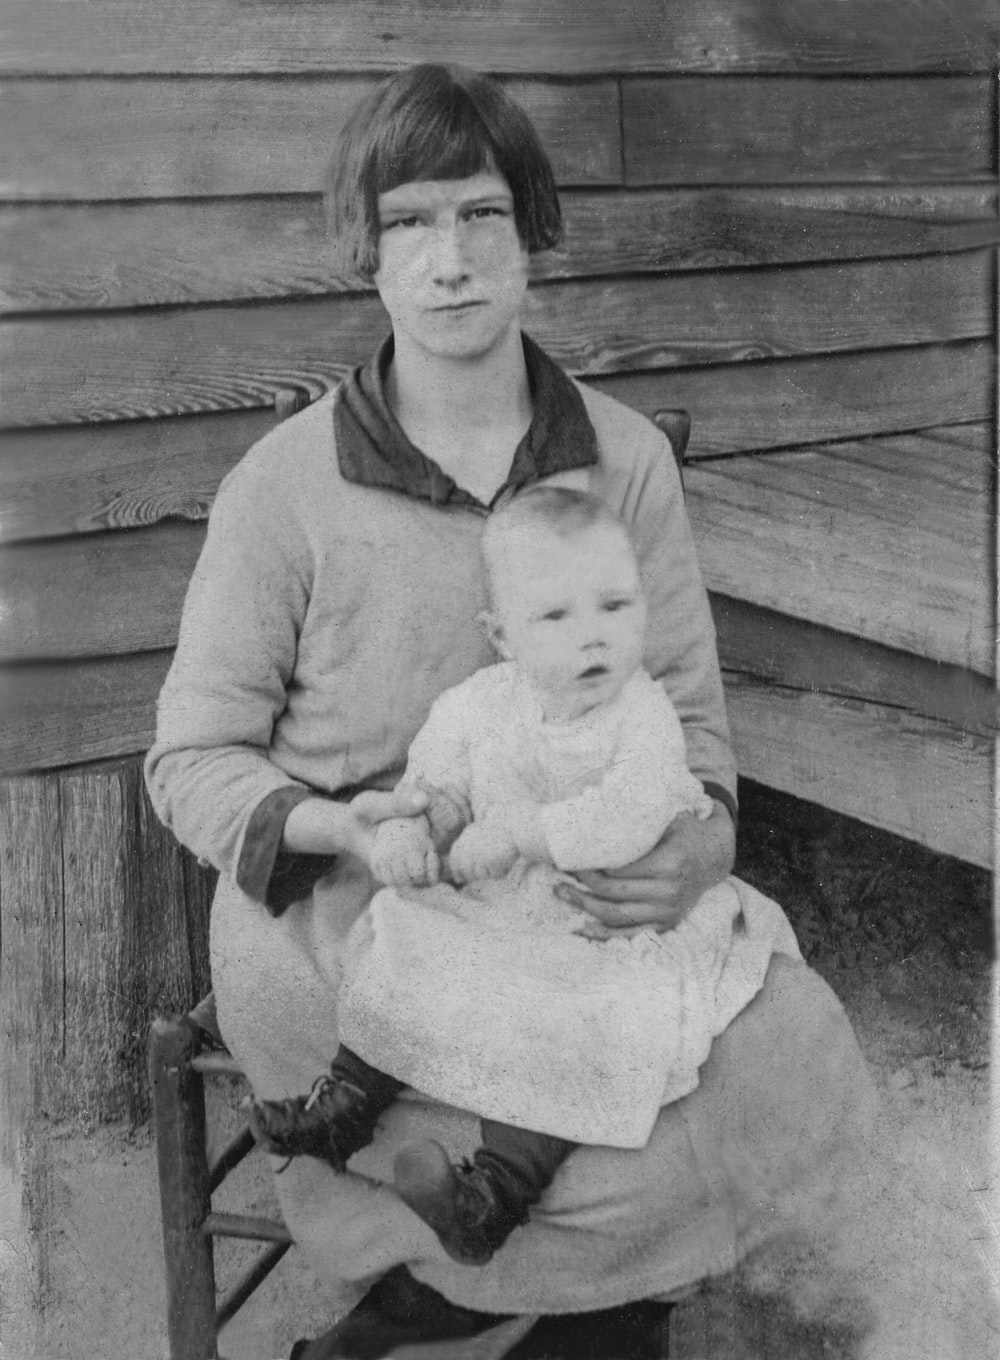 woman in sweater carrying baby in grayscale photography